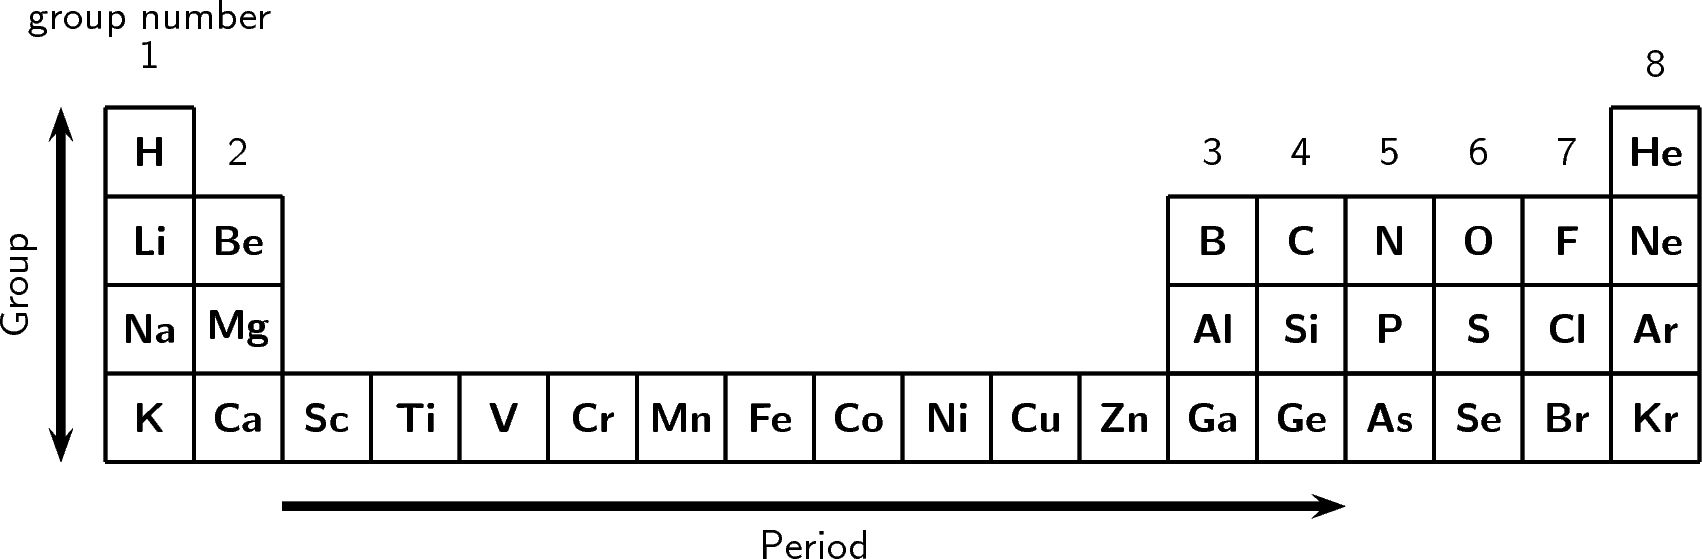 The periodic table: Groups and periods